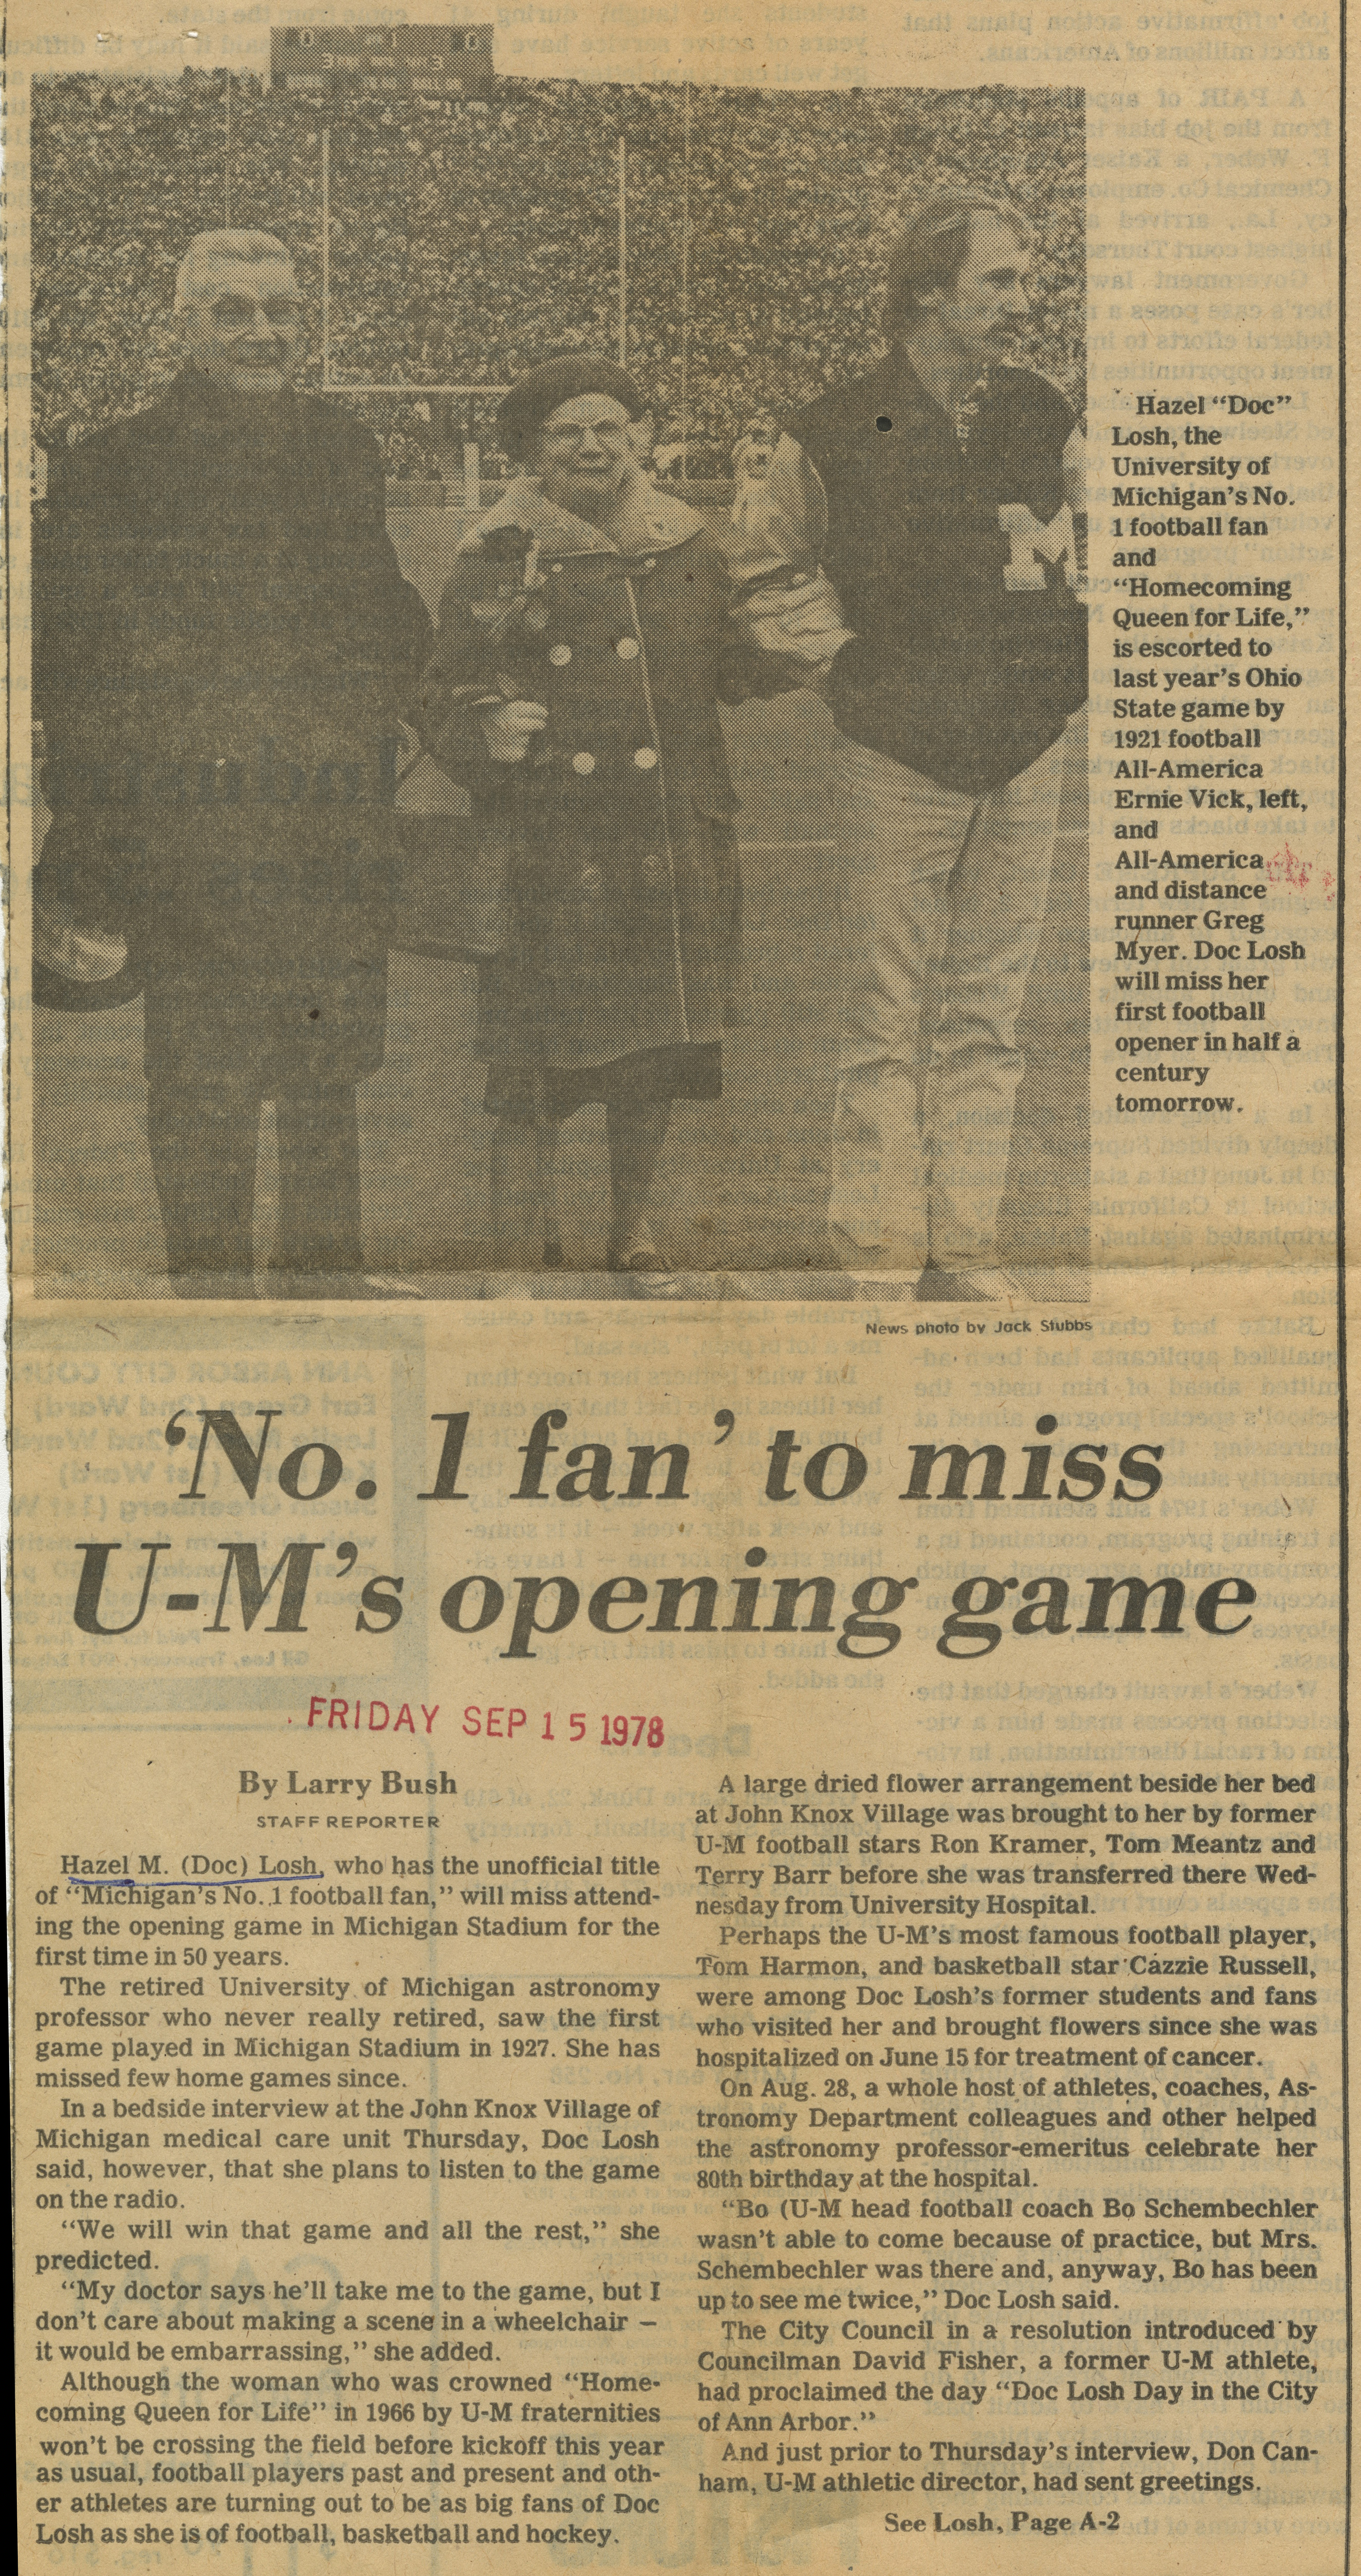 'No. 1 fan' to miss U-M's opening game image